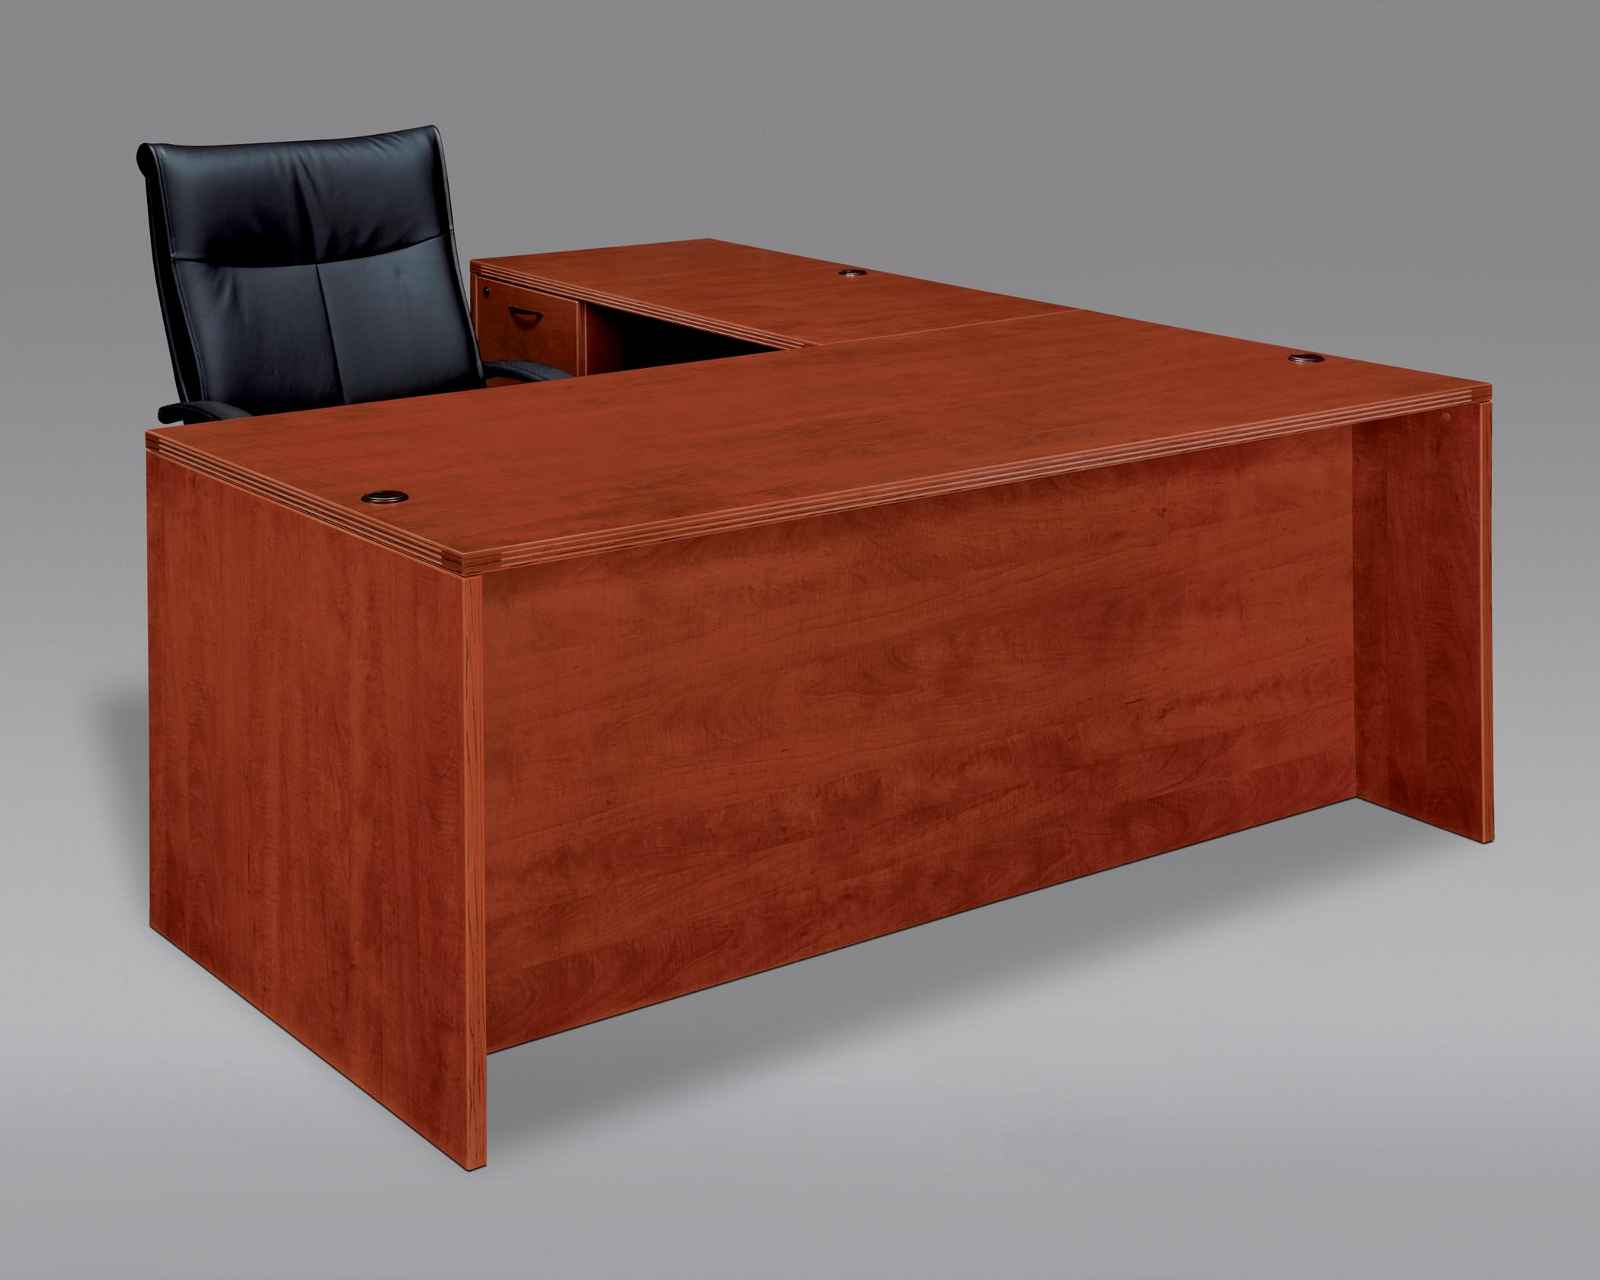 L-Shaped Work Desk for Home Office